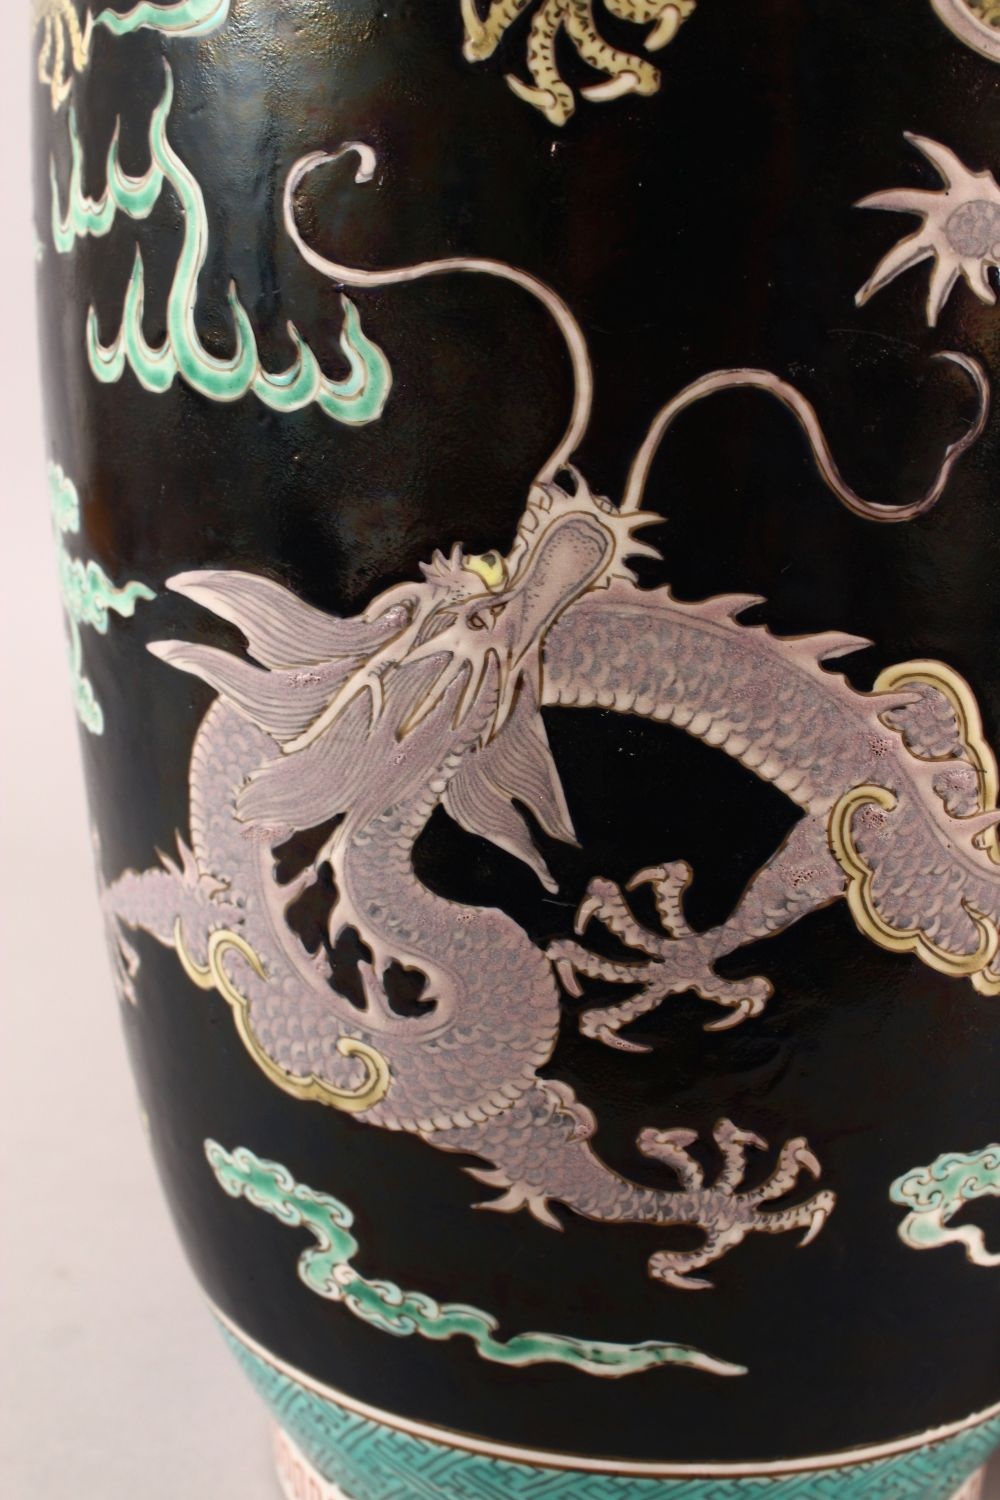 A LARGE PAIR OF CHINESE FAMILLE NOIR PORCELAIN DRAGON VASES, each vase with a black ground depicting - Image 8 of 13